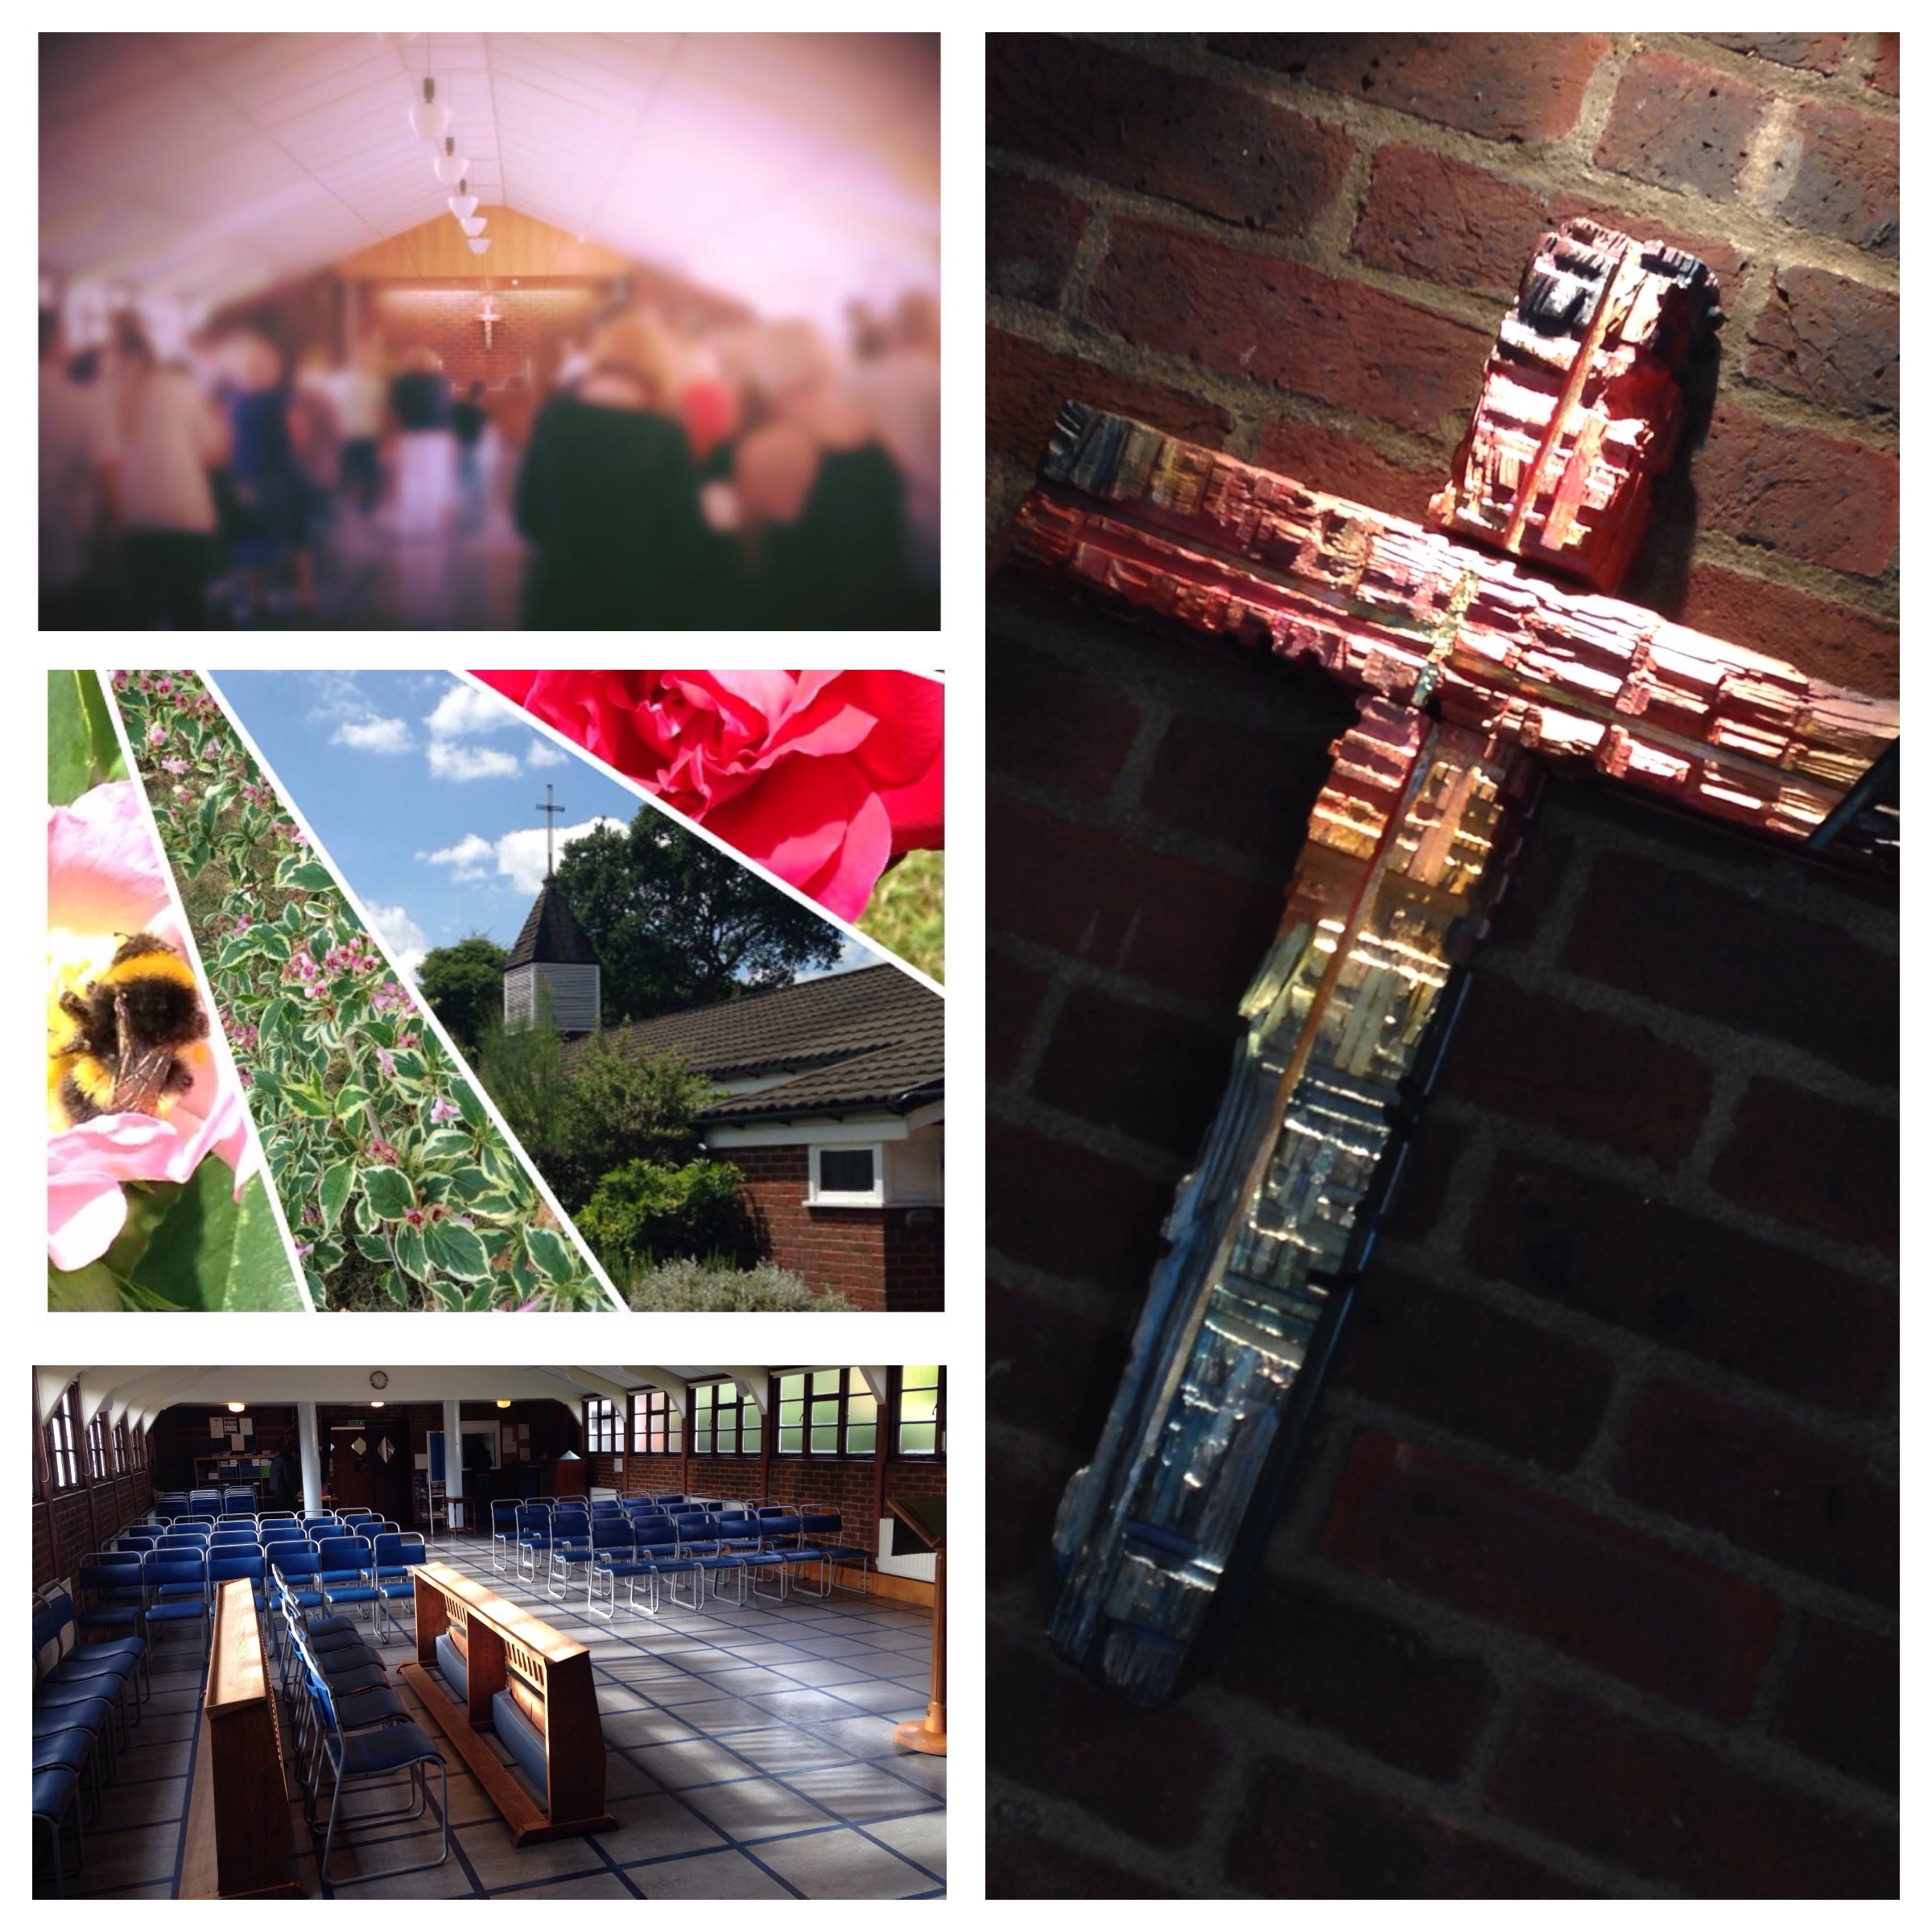 Communion & Coffee @ St John's | Walton-on-Thames | United Kingdom